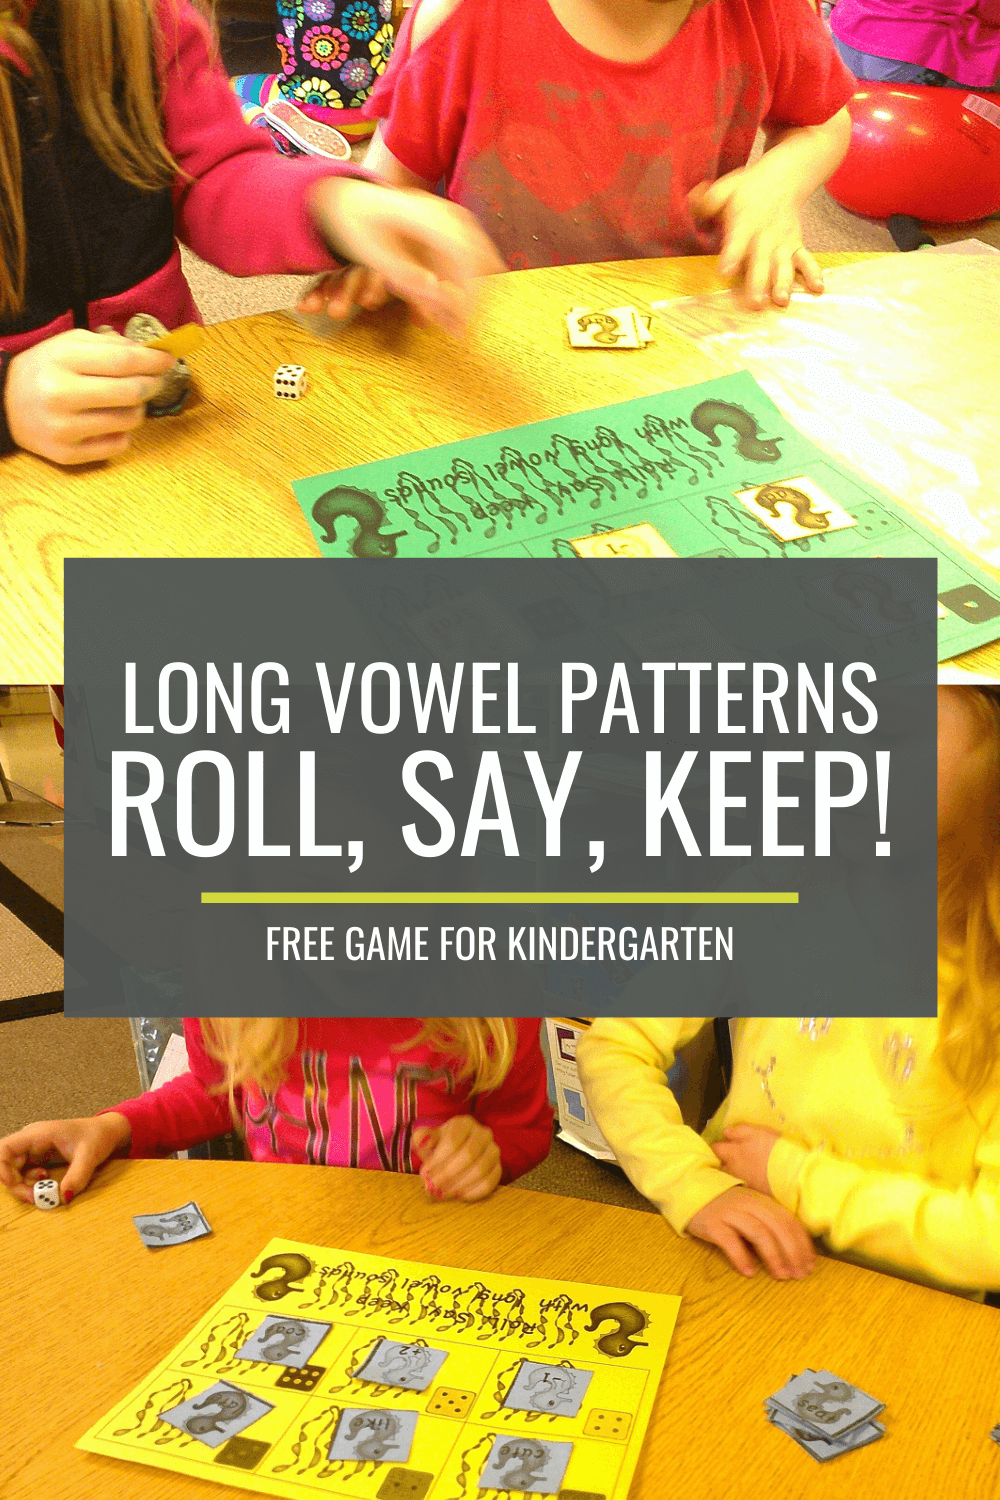 Free Long Vowel Patterns Roll, Say, Keep! Game